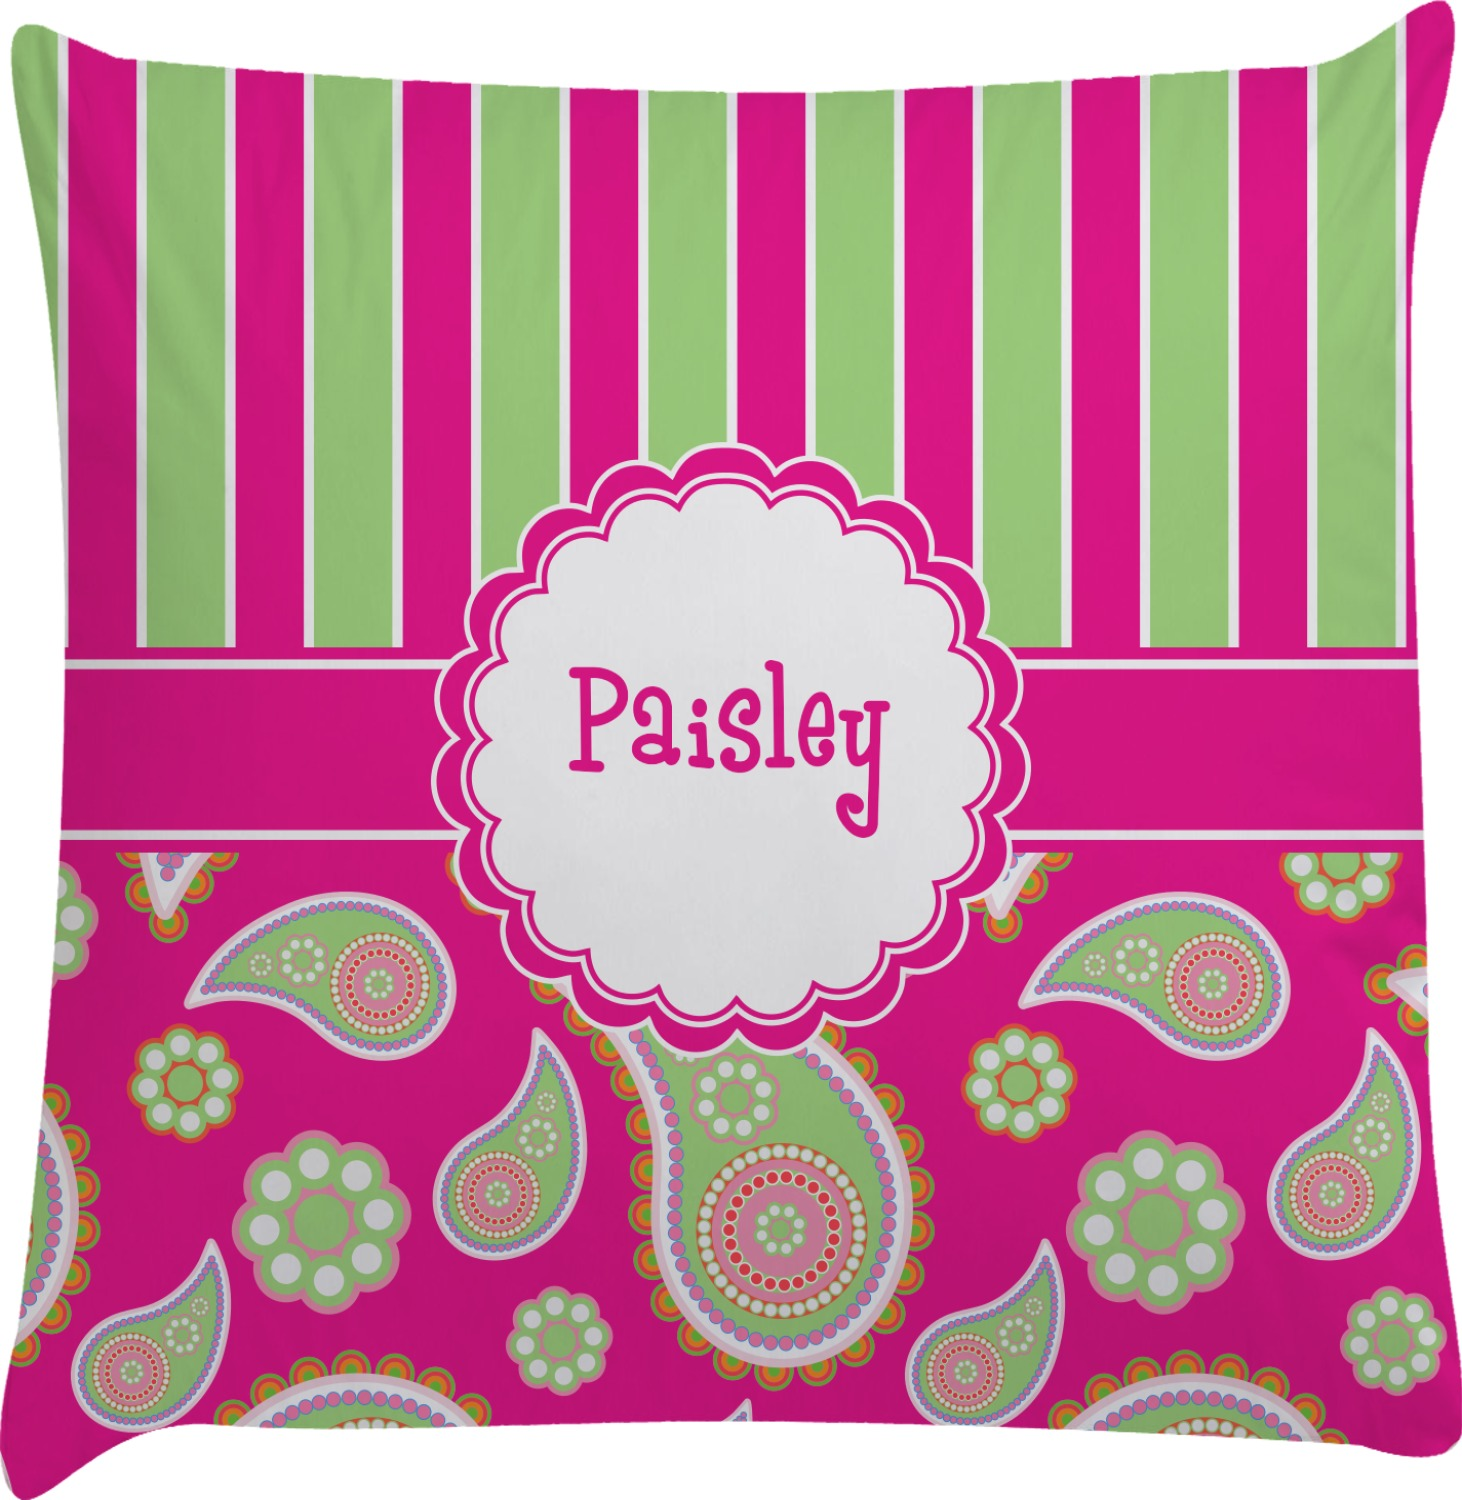 Pink & Green Paisley and Stripes Decorative Pillow Case (Personalized) - You Customize It